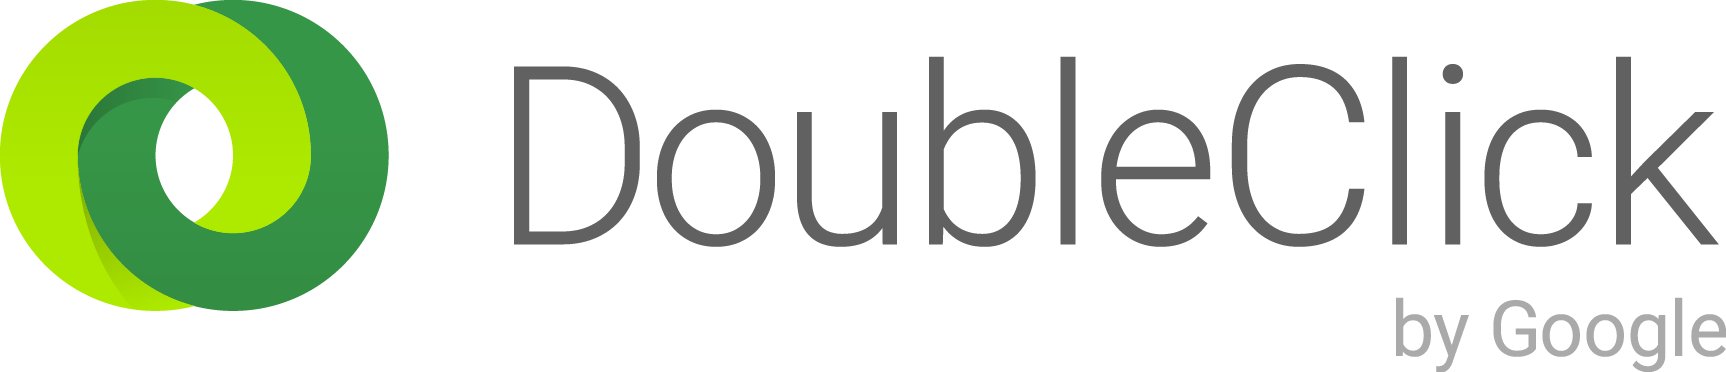 DoubleClick - Digital Advertising Solutions